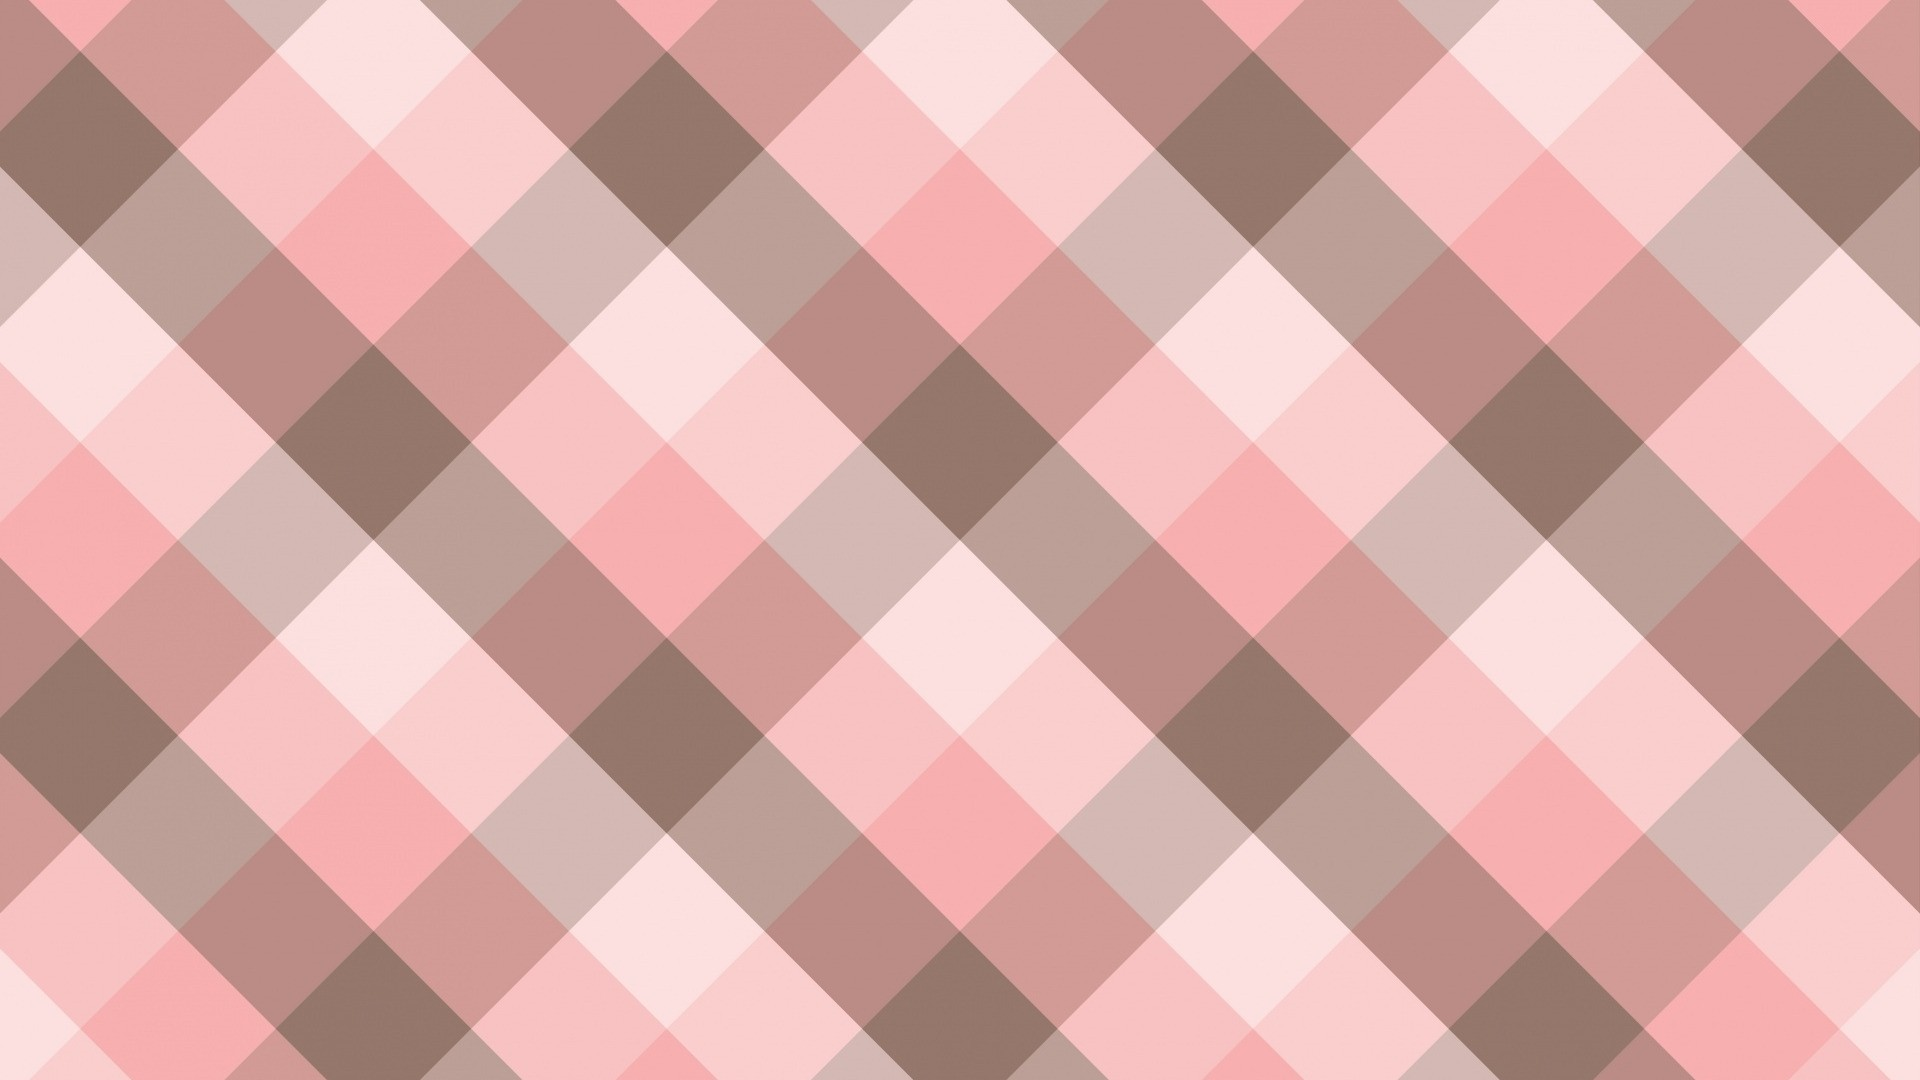 Checkered HD Wallpaper